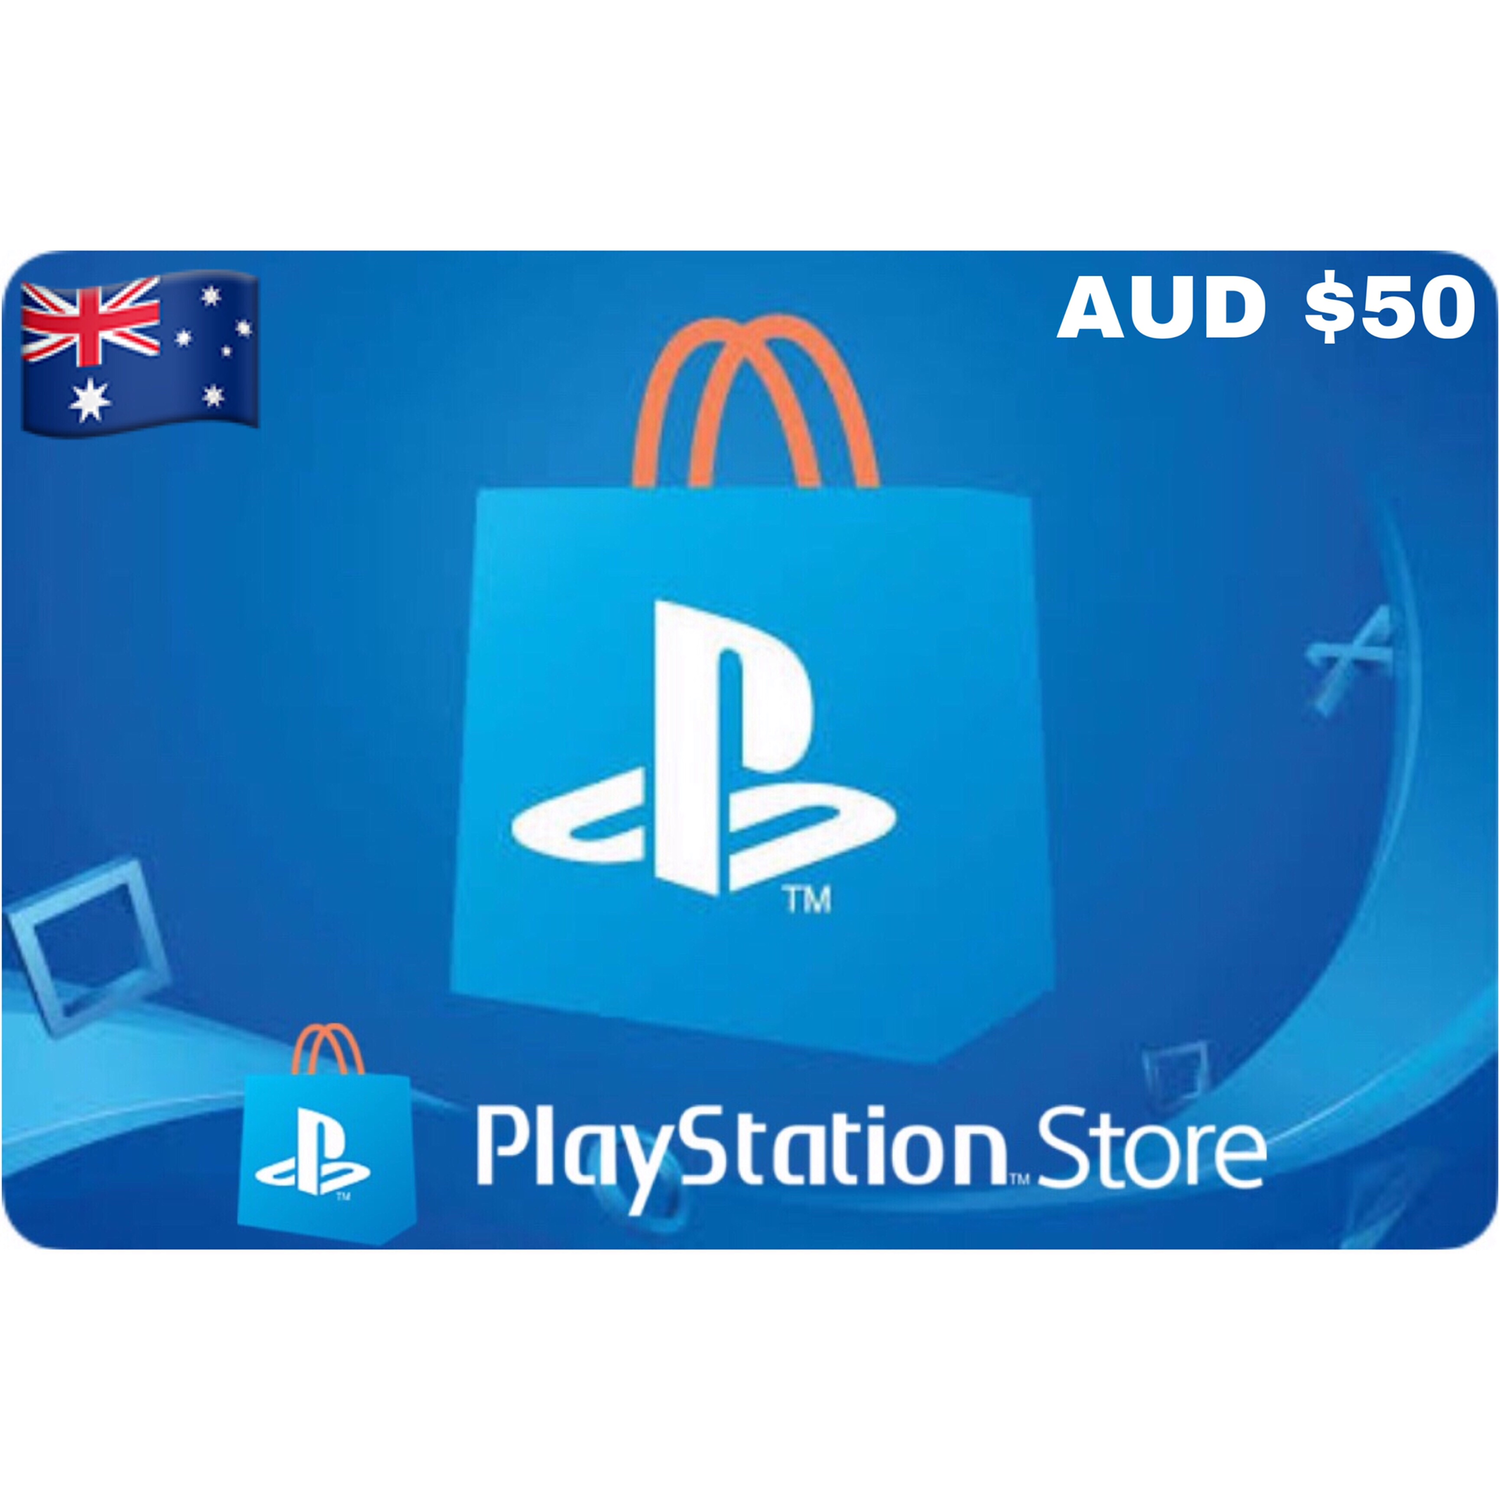 Playstation (PSN Card) AUD $50